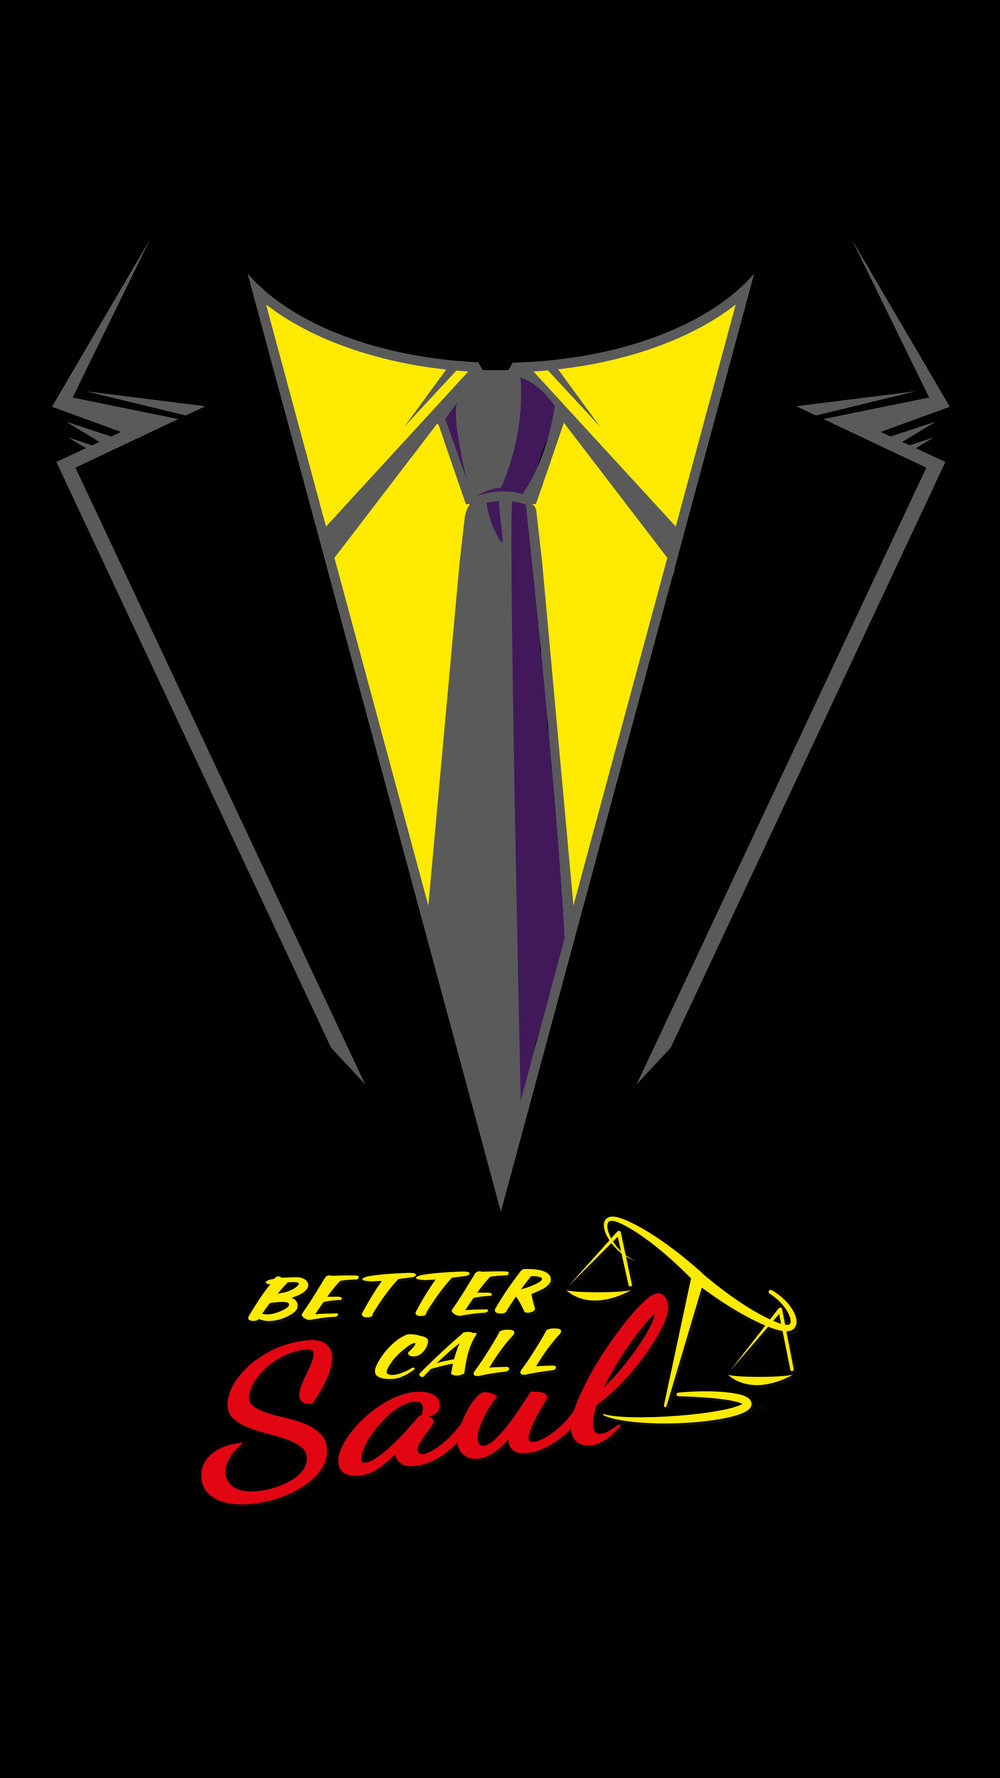 BetterCallSaul_Zedge_2250x4000_20.jpg